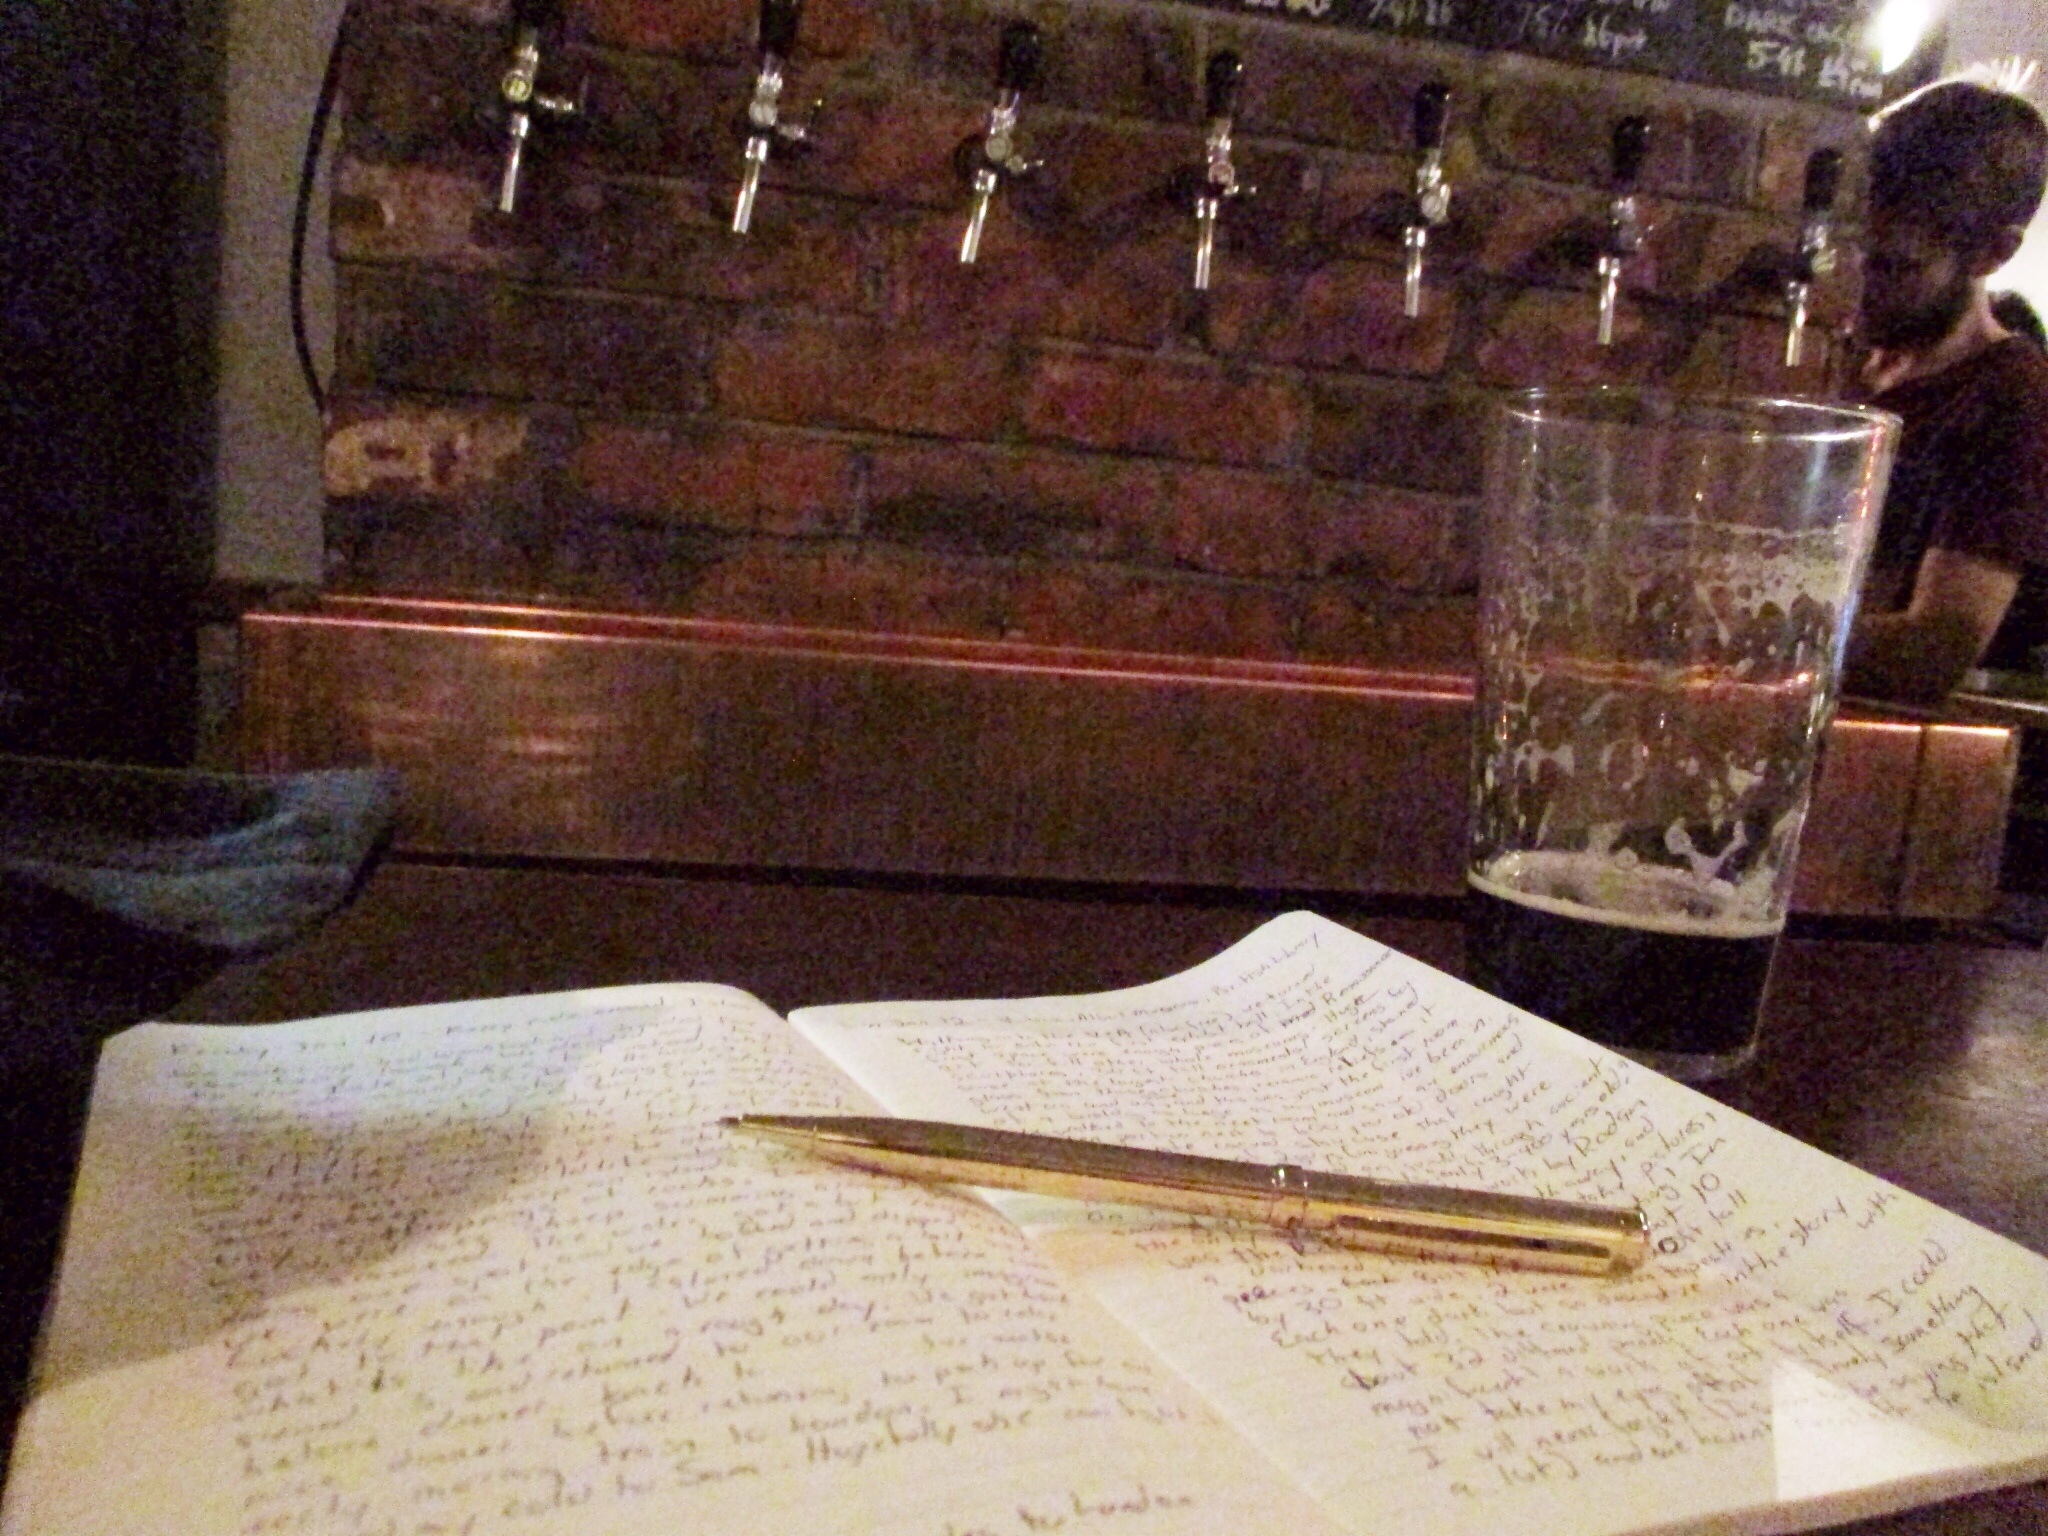 Jotting down some thoughts at the Holborn Whippet with a cold pint after a day spent exploring London.